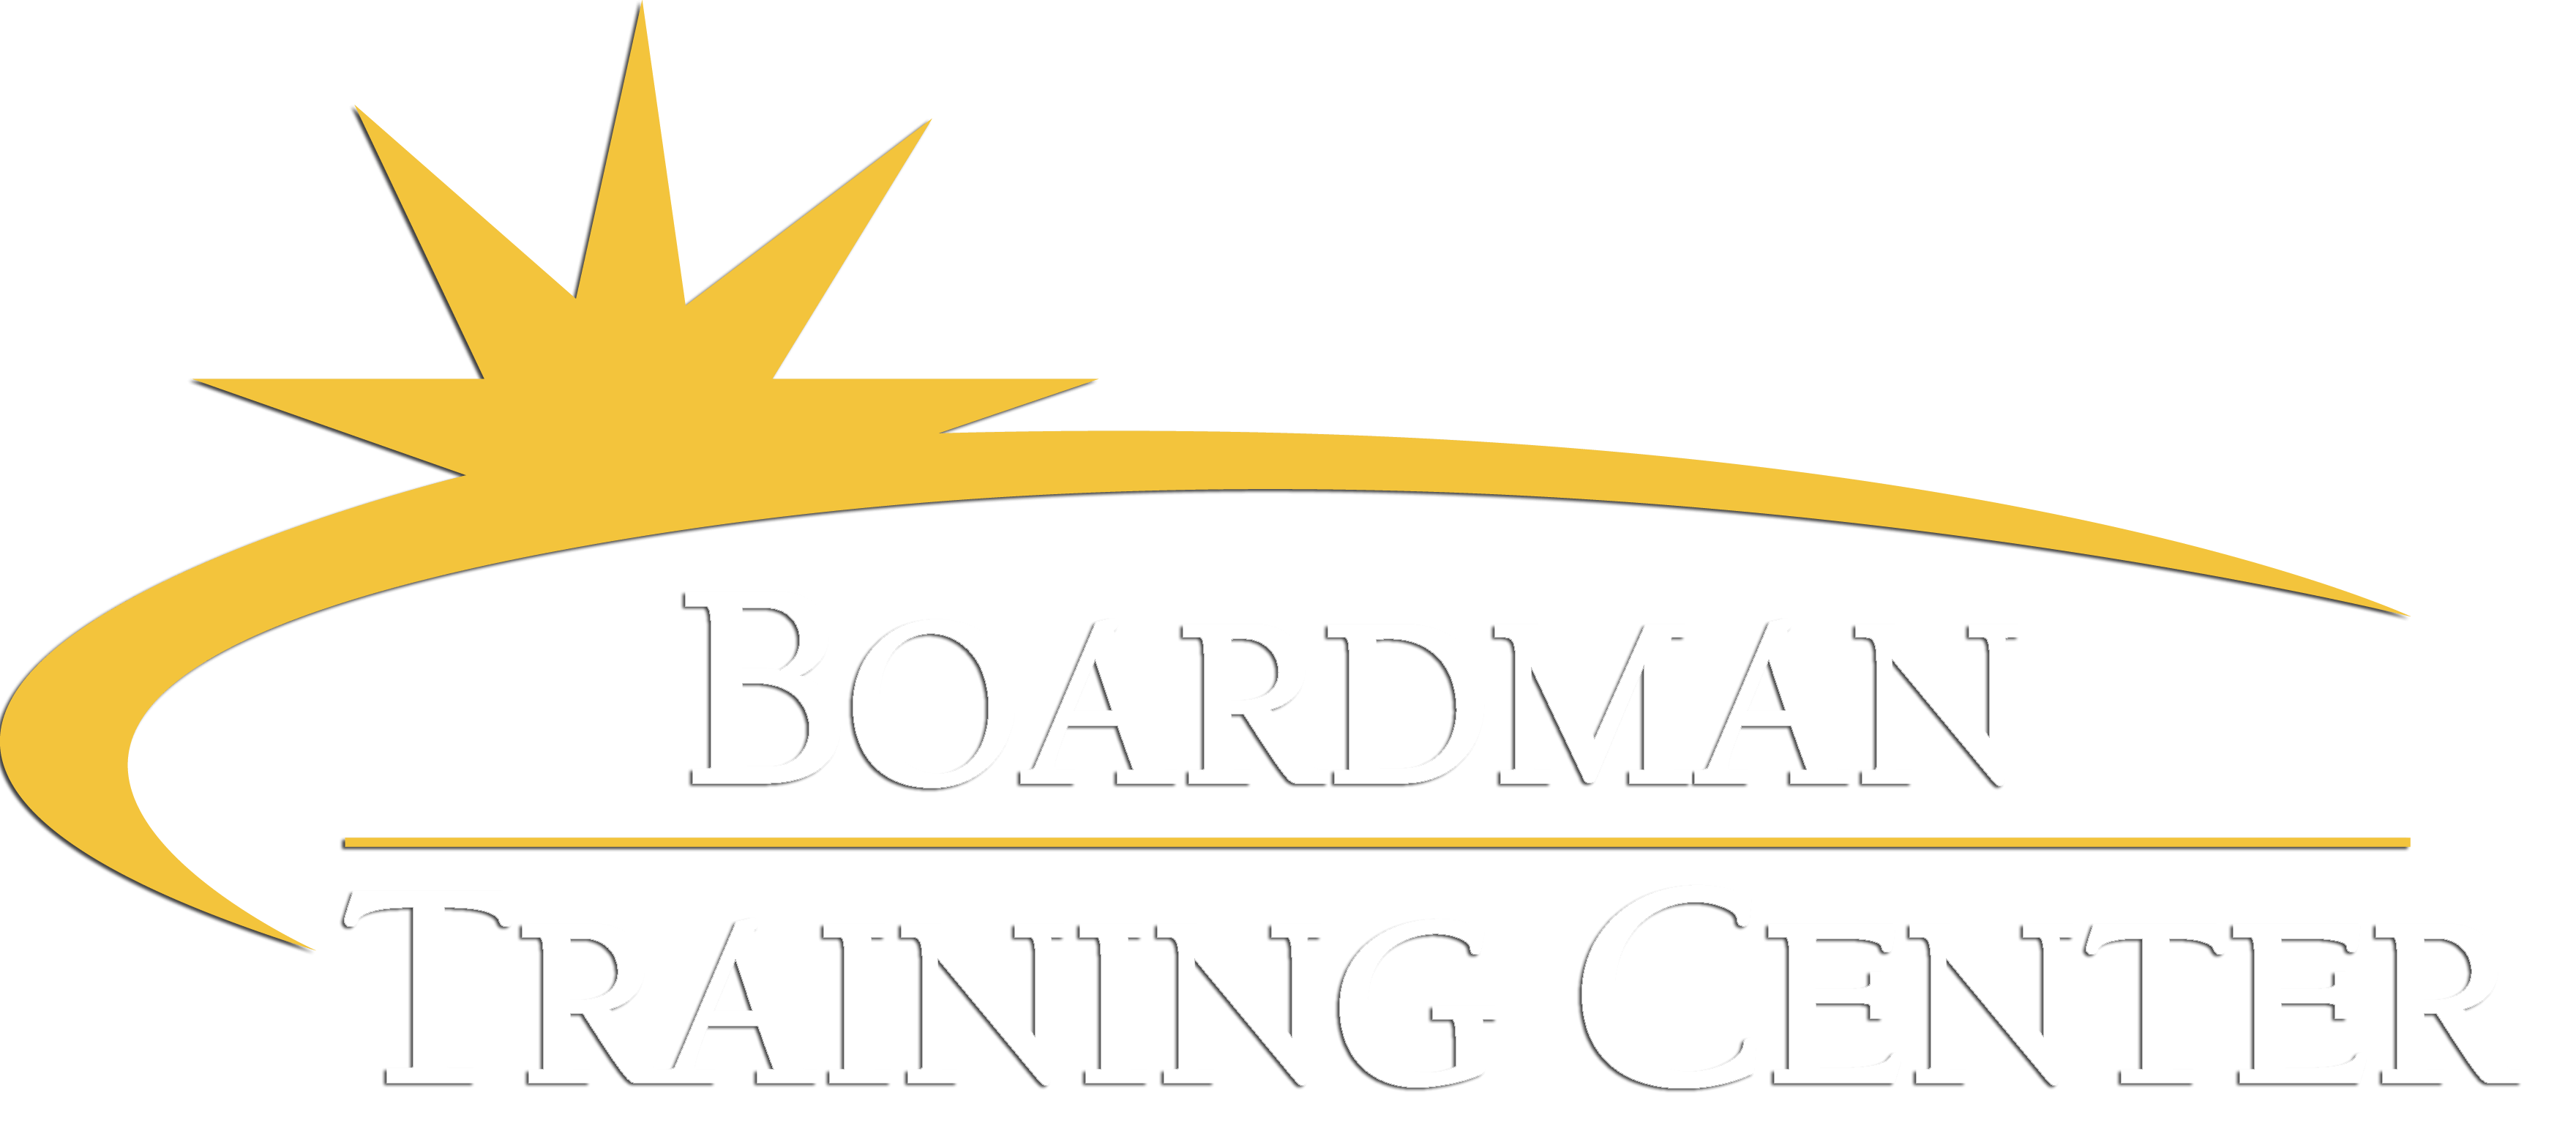 Phlebotomy Technician Training In Boardman Boardman Training Center